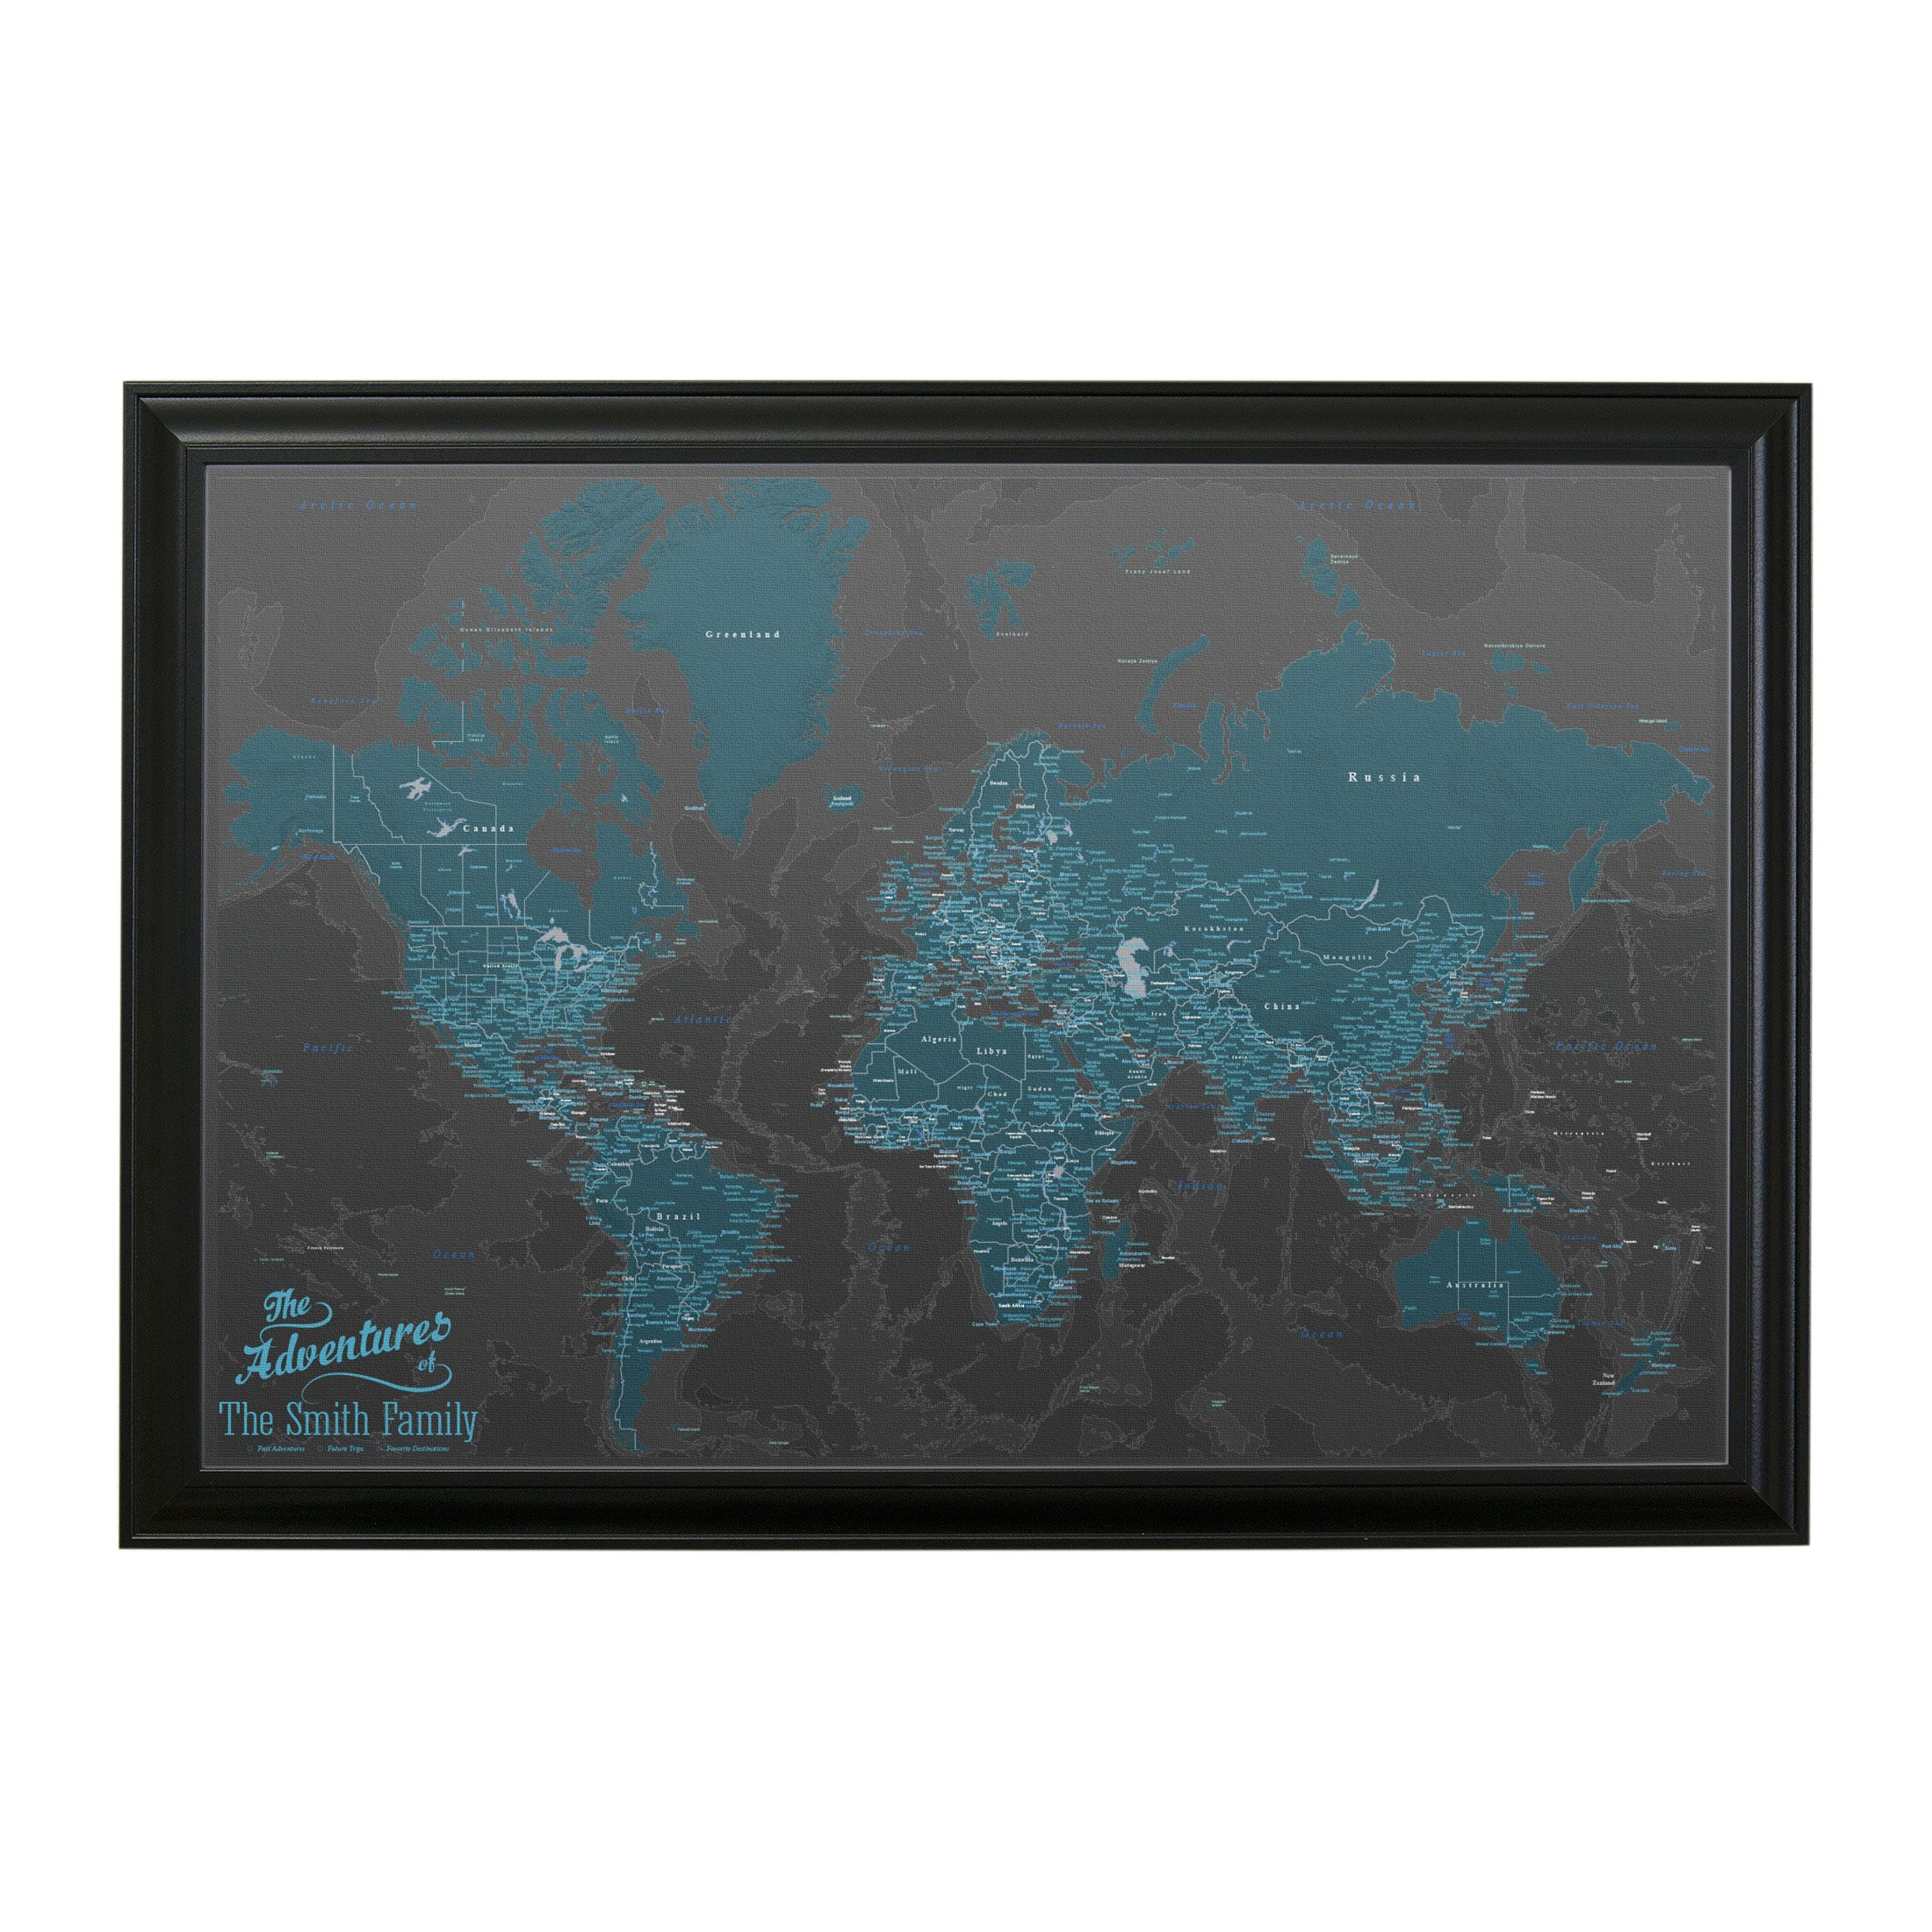 Canvas - Personalized Midnight Dream World Push Pin Travel Map with Black Frame